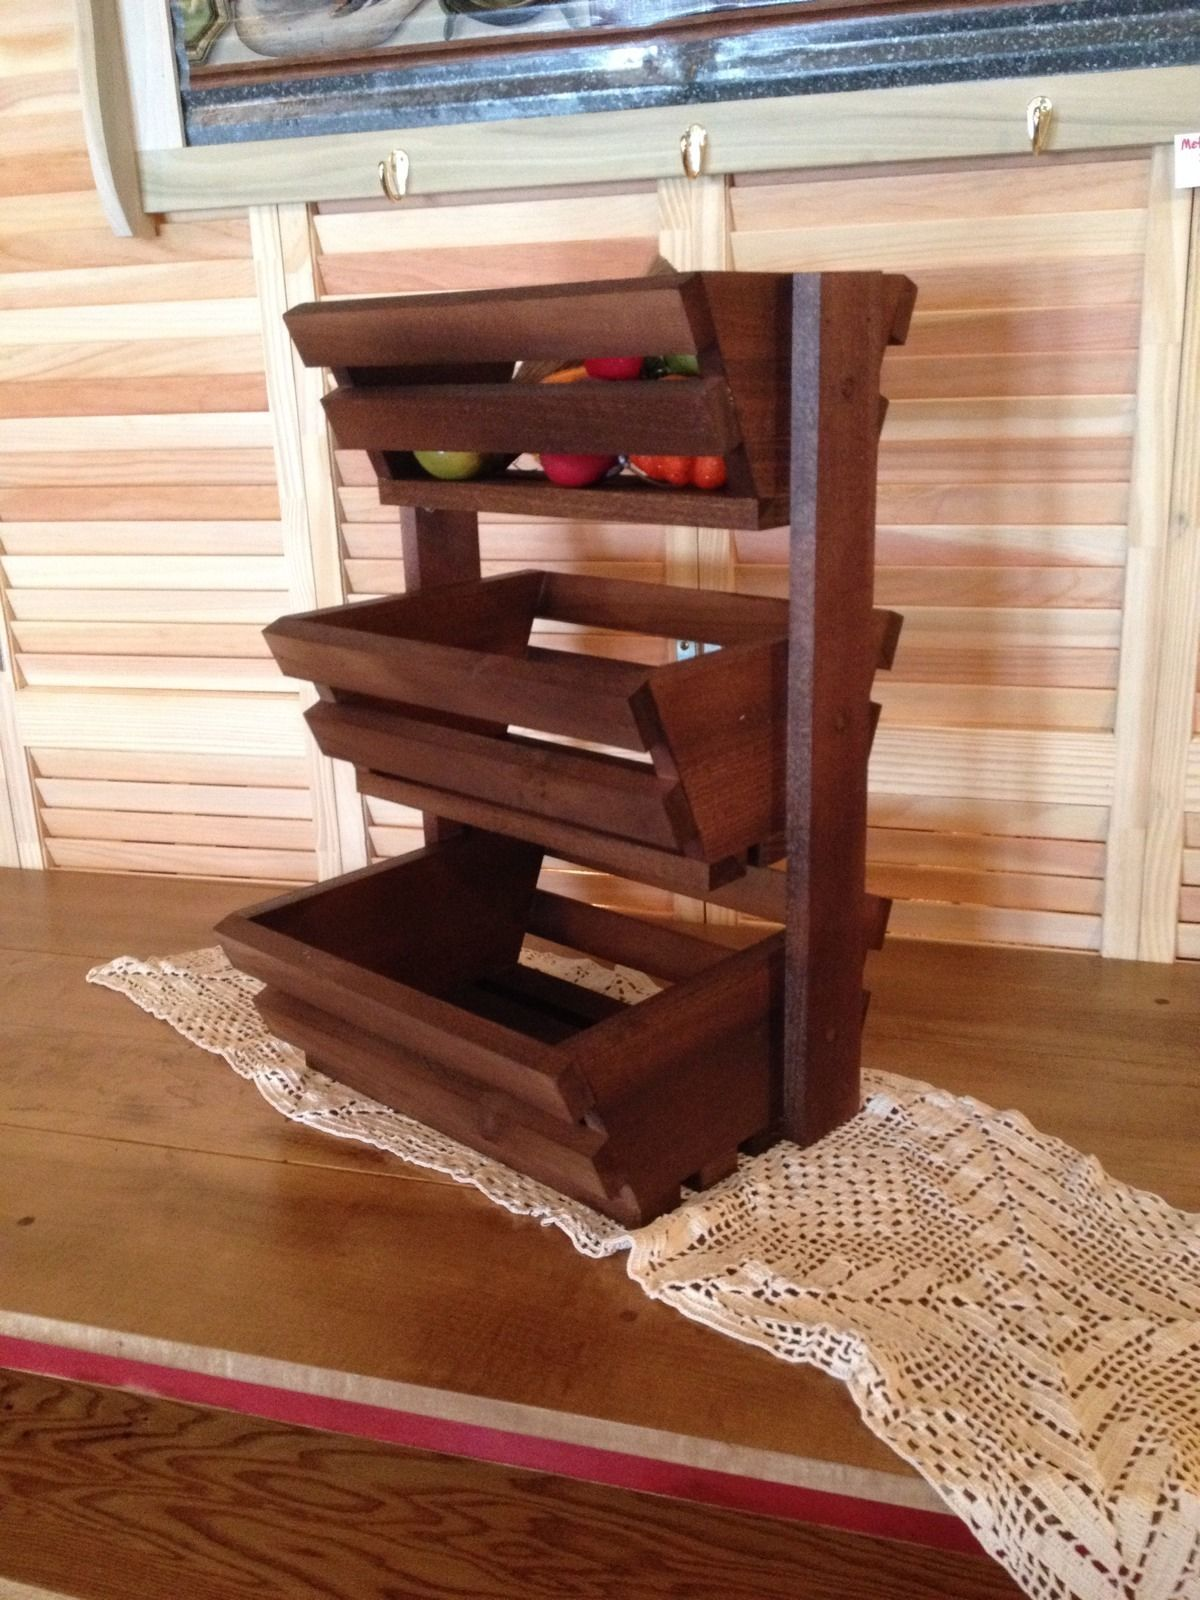 Wood Fruit Vegetable Display Holder Kitchen Counter Top 3 Tier Magazine Rack Ebay Countertops Fruit Holder Diy Furniture